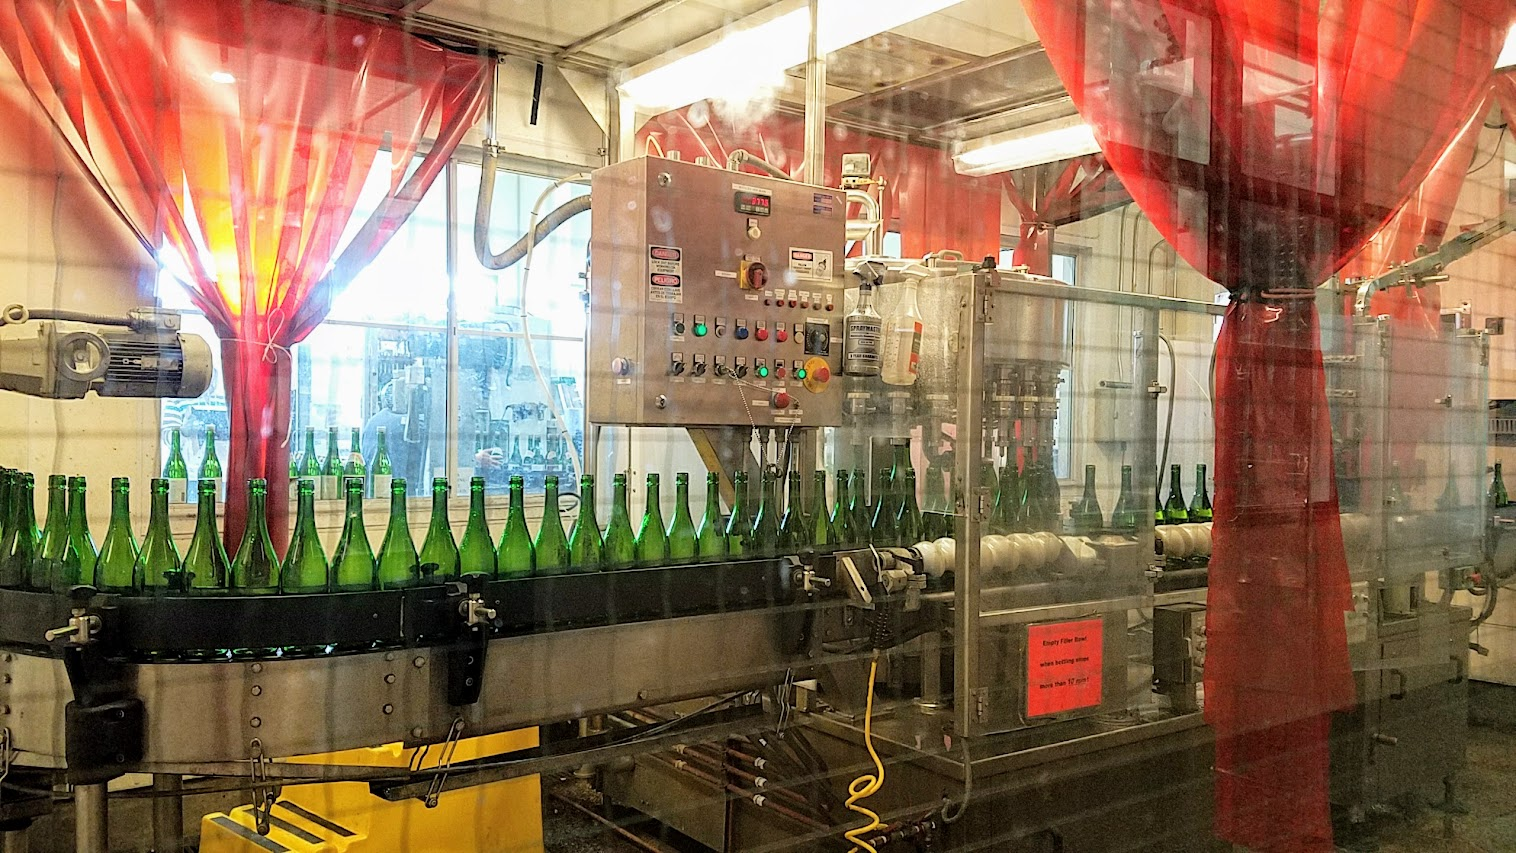 Bottling process for the sake that can be seen during the free self guided brewery tour at Gekkkeikan Sake in Folsom, California